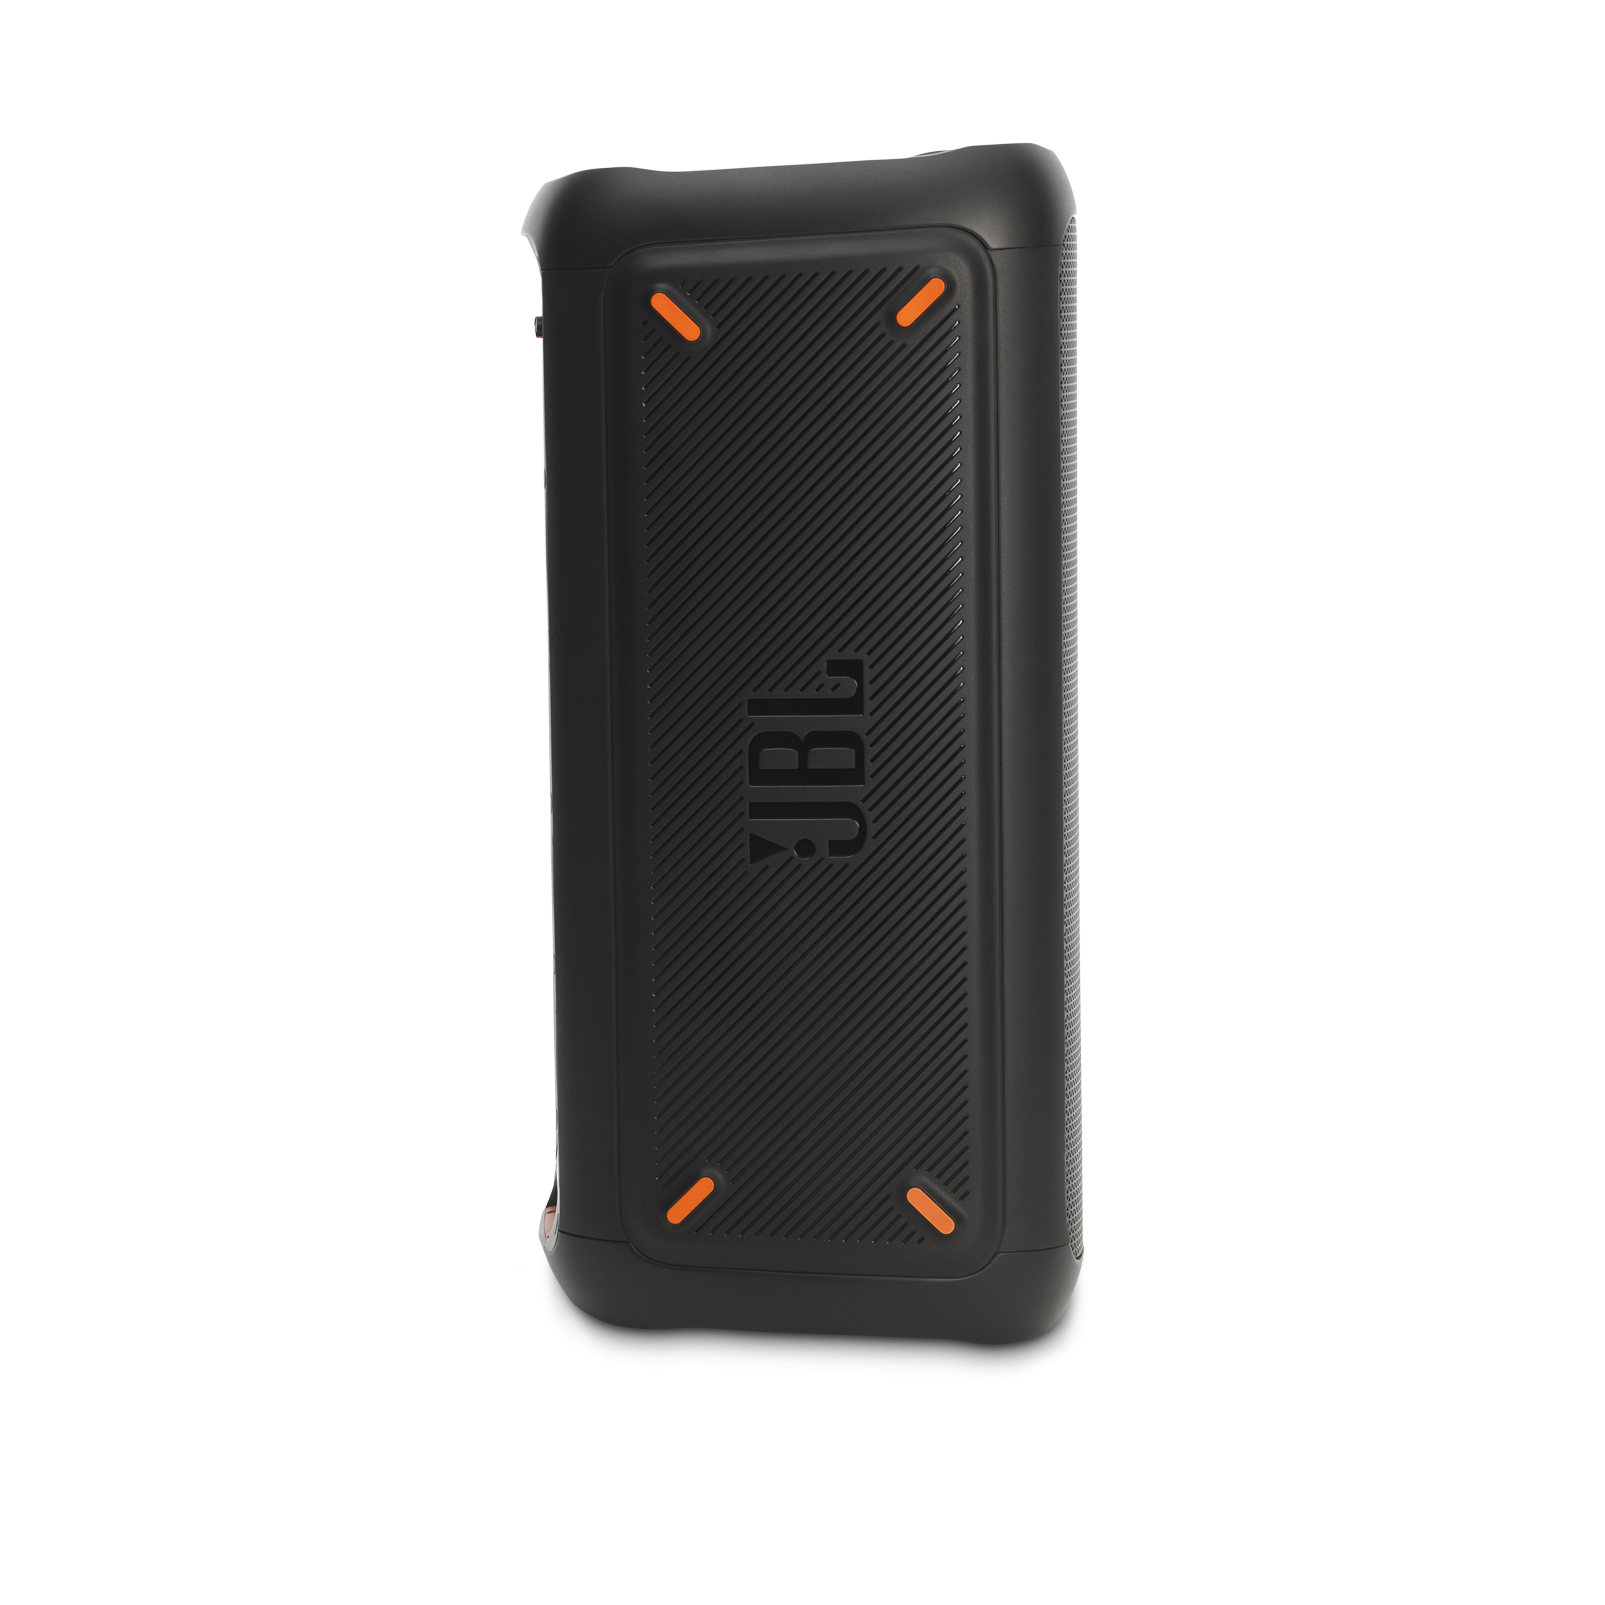 JBL PartyBox 300 - Black - Battery-powered portable Bluetooth party speaker with light effects - Left